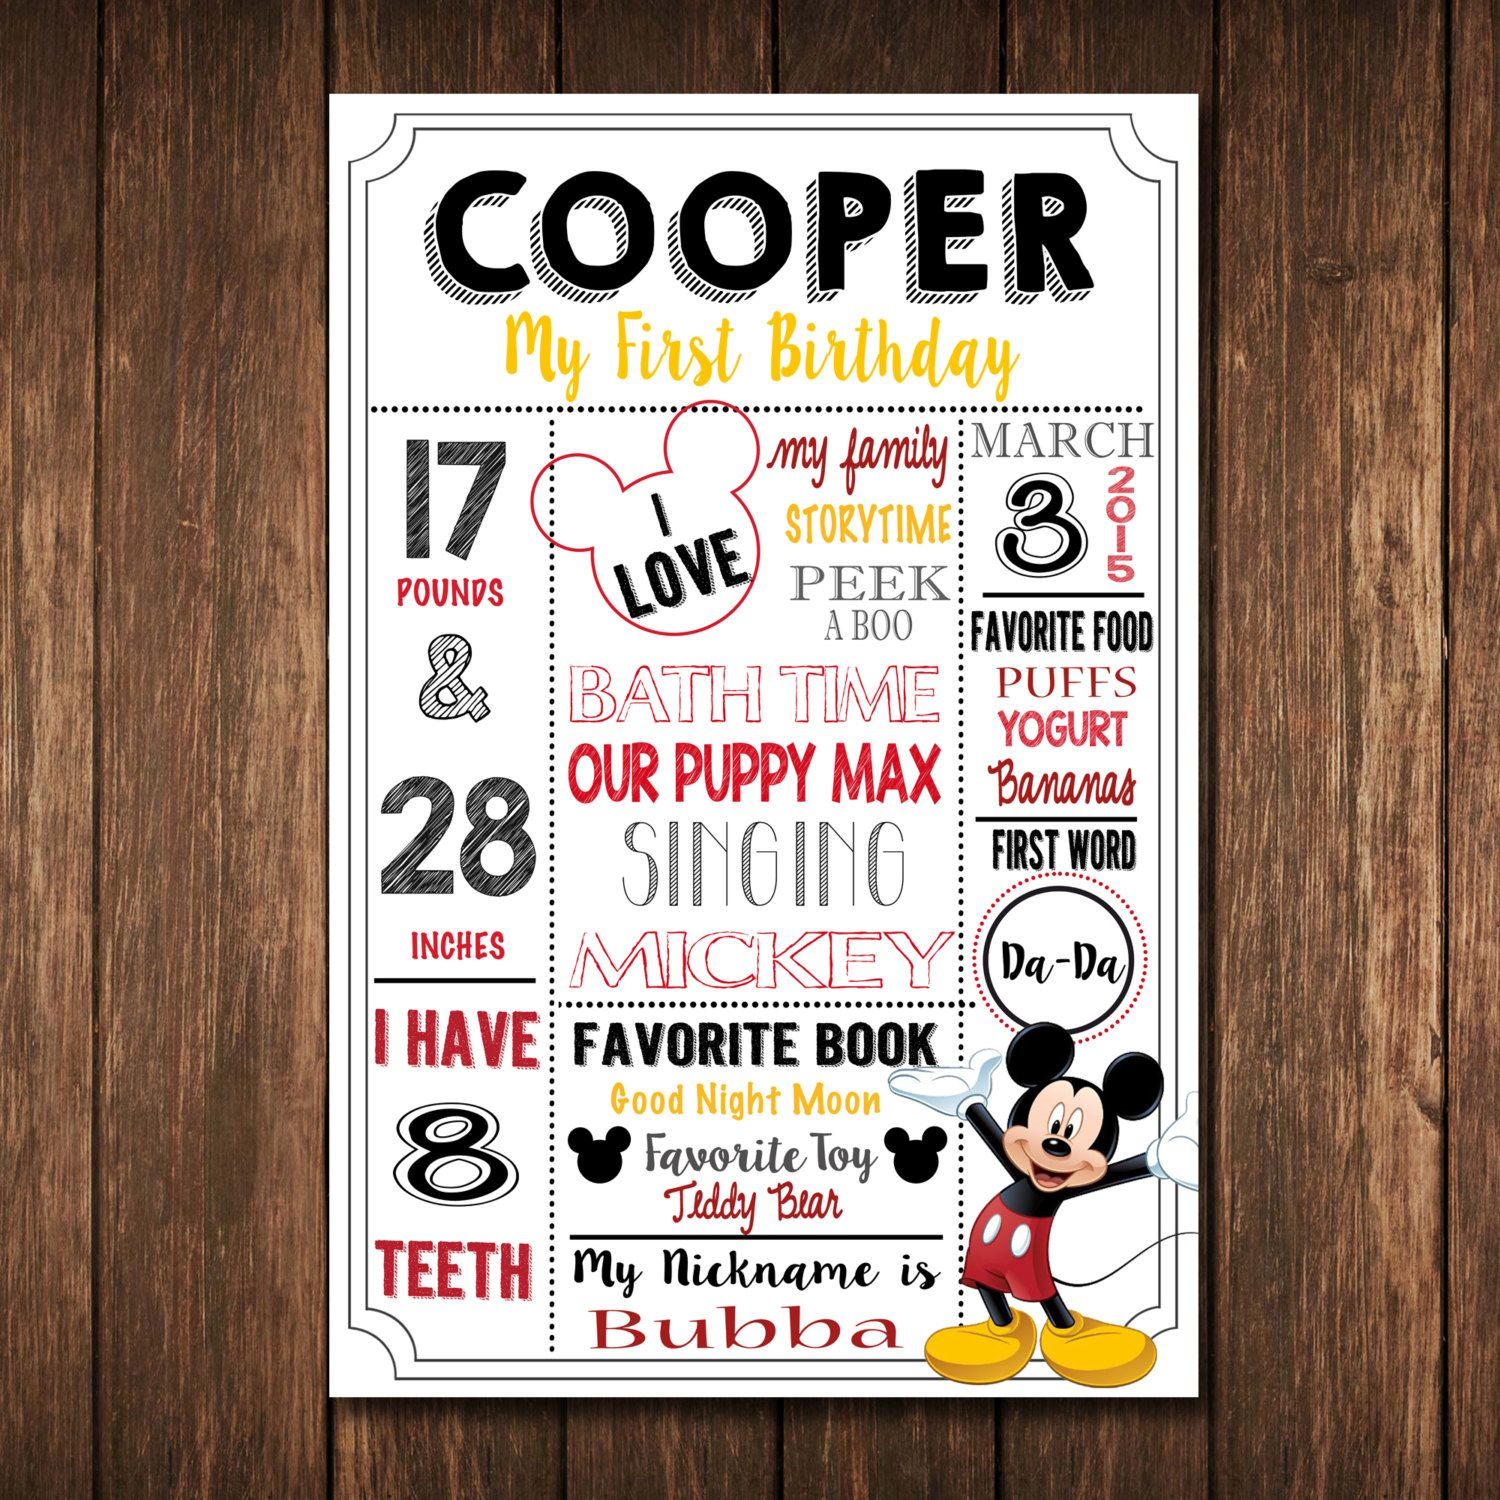 personalized birthday poster ; f2507c99169110a2723b28c439424fe1